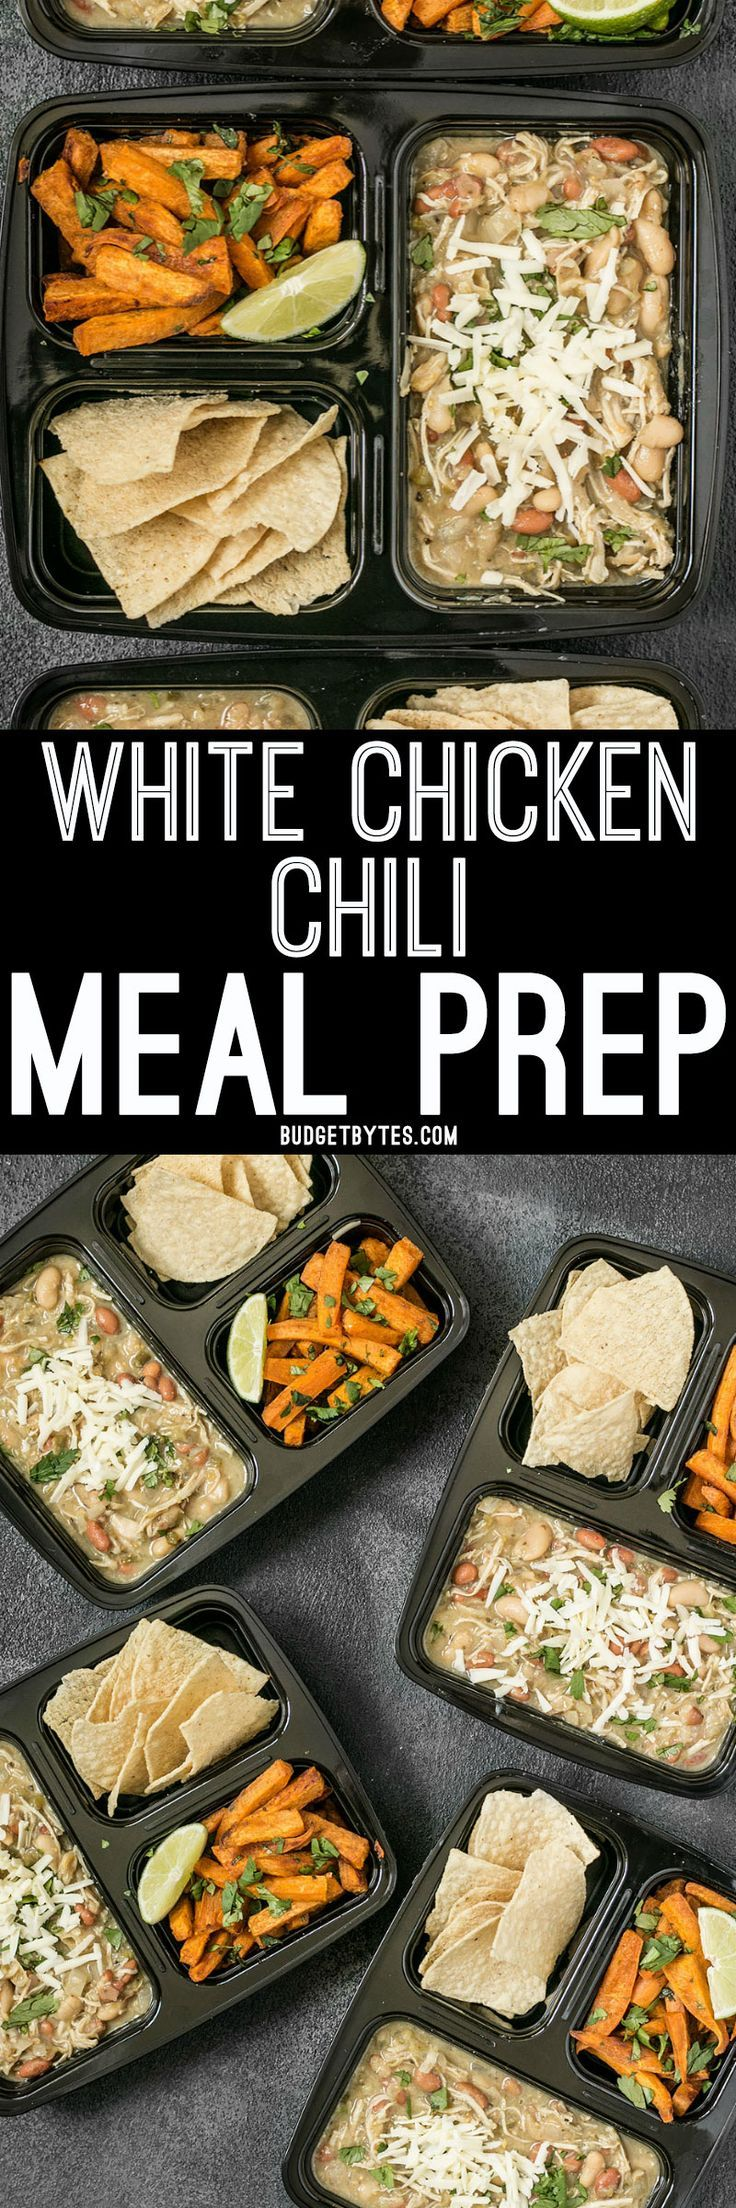 This White Chicken Chili Meal Prep includes a slow cooker chili with Cumin Lime Roasted Sweet Potatoes and tortilla chips for dipping! @budgetbytes